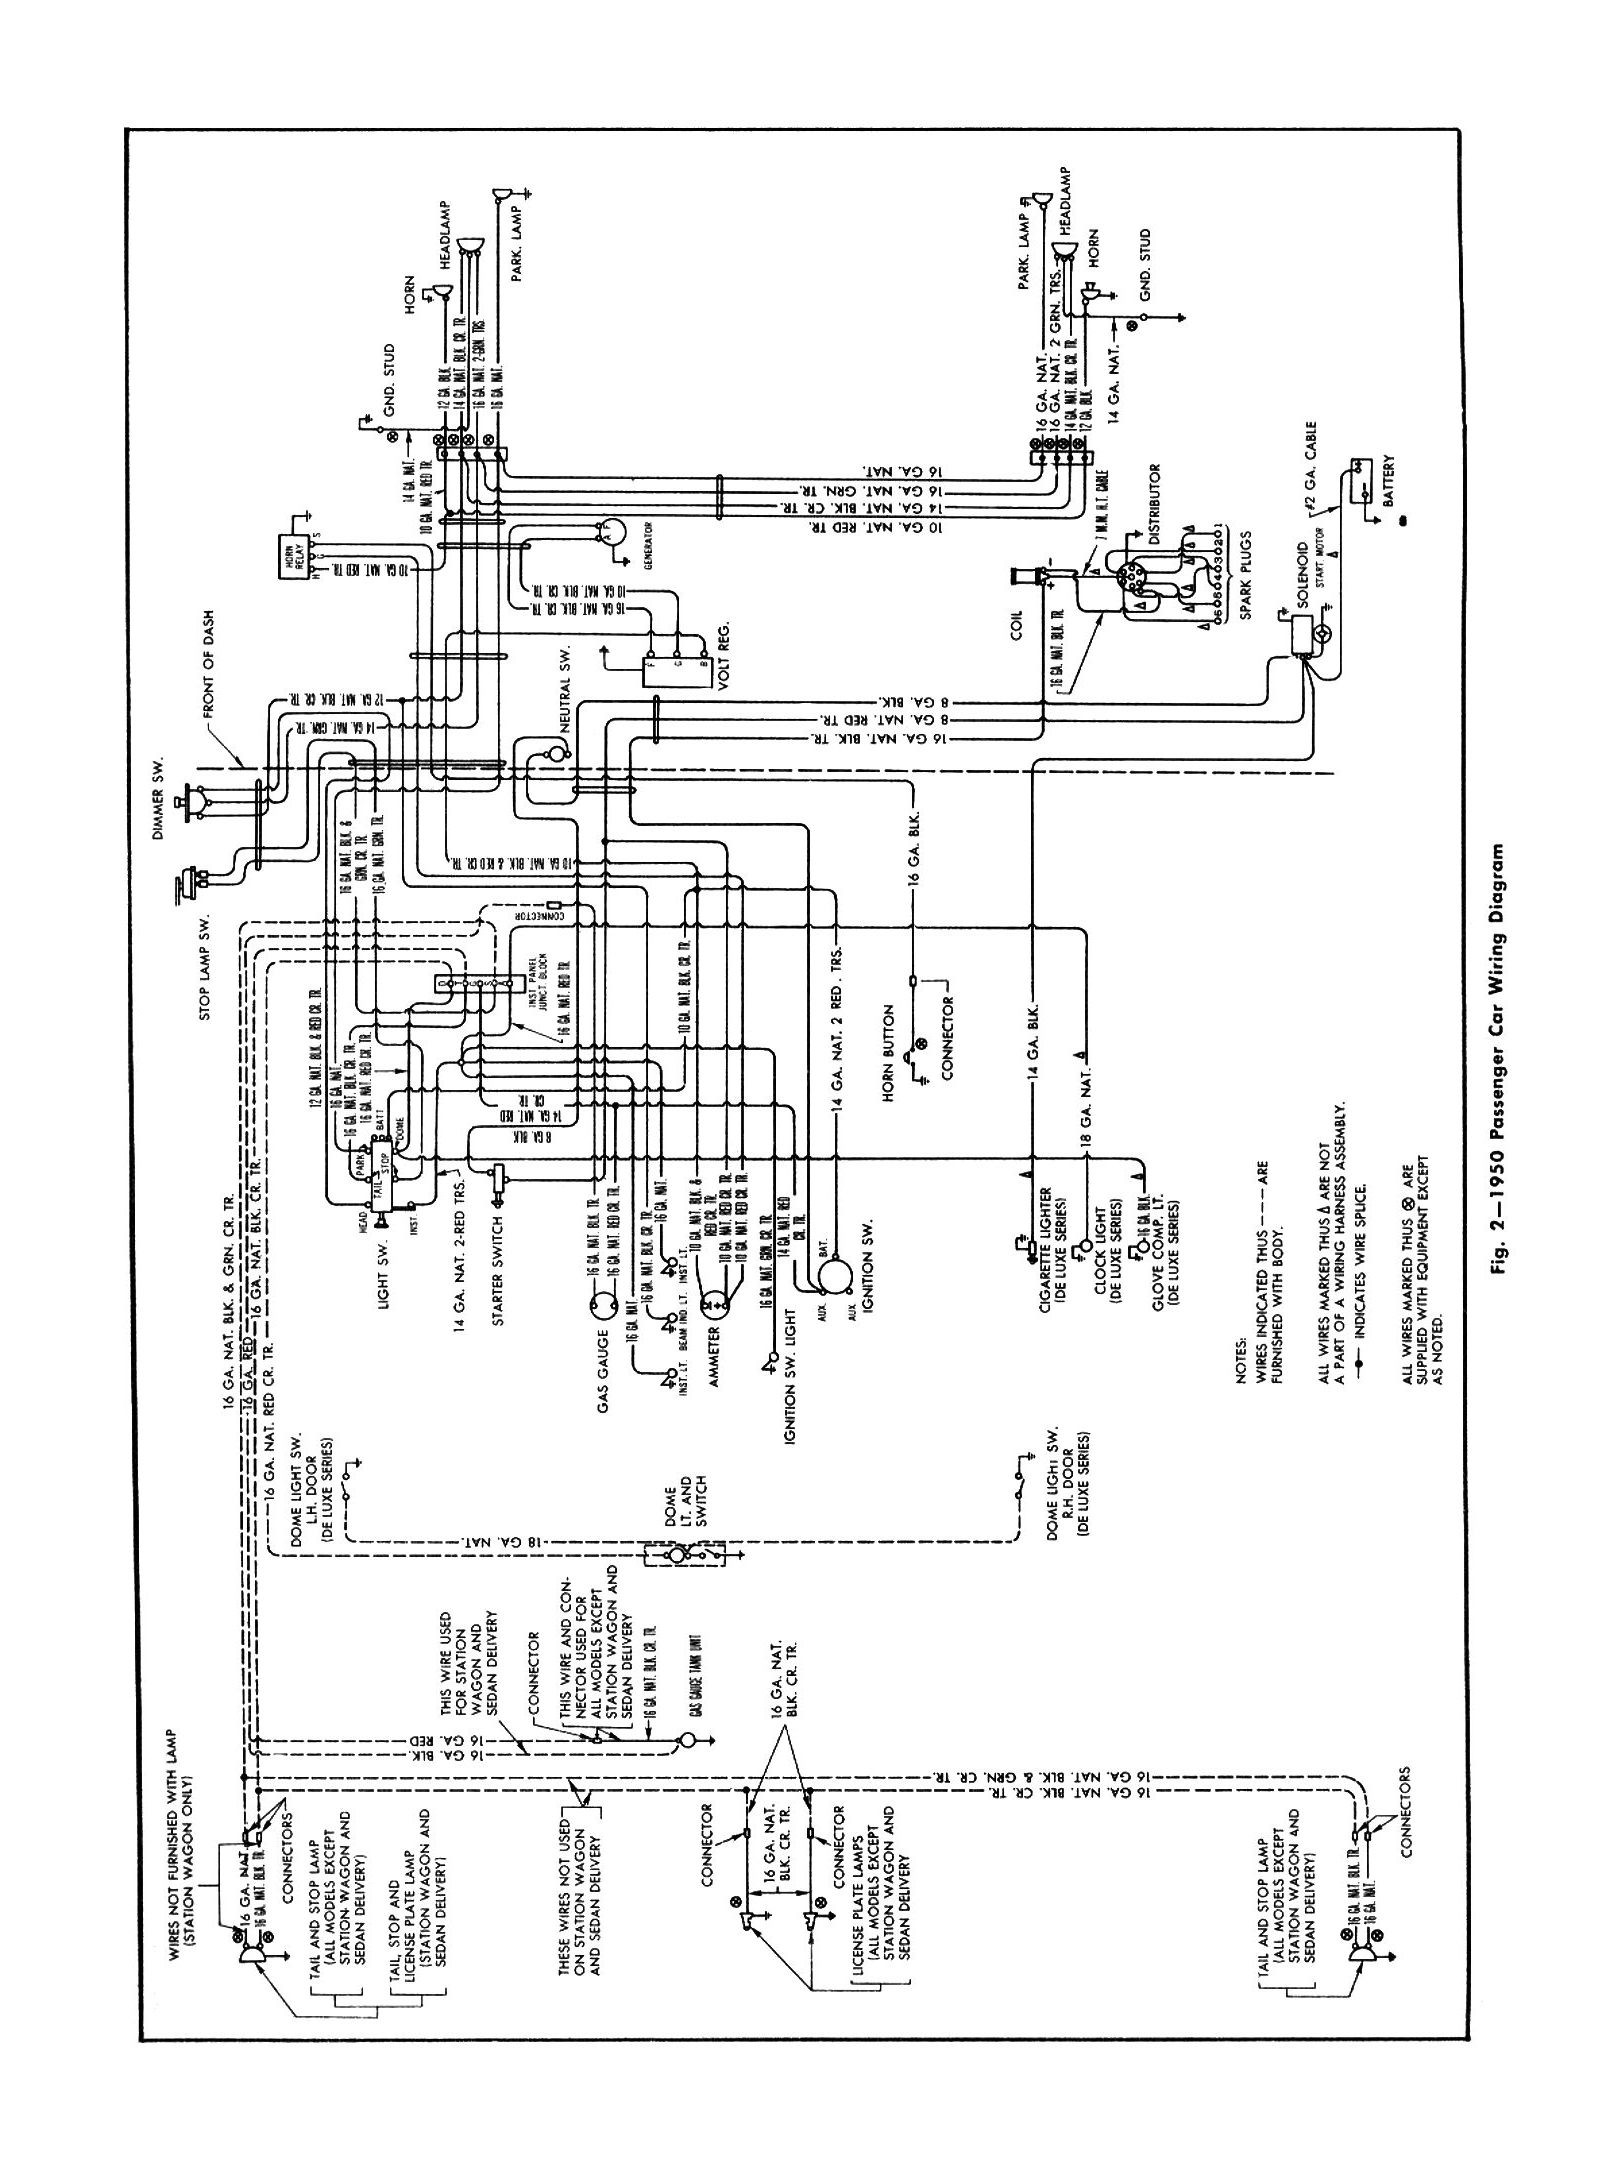 50car chevy wiring diagrams 53 ford wiring diagram at bayanpartner.co